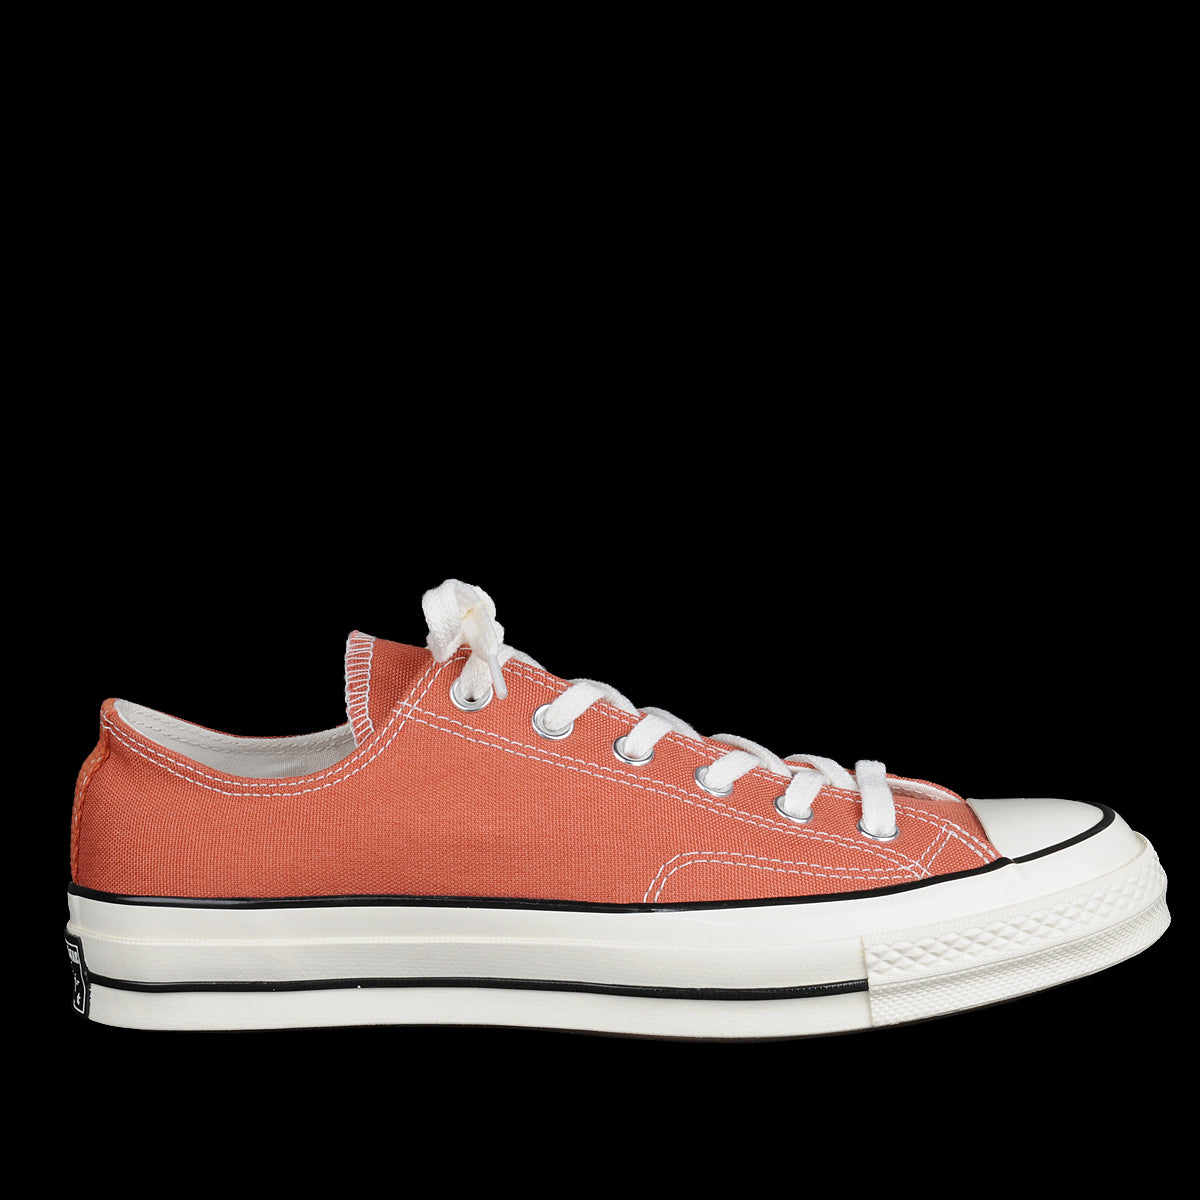 c522aacce7b9 Converse - Chuck Taylor All Star 70 Ox in Terracotta Red - UNIONMADE